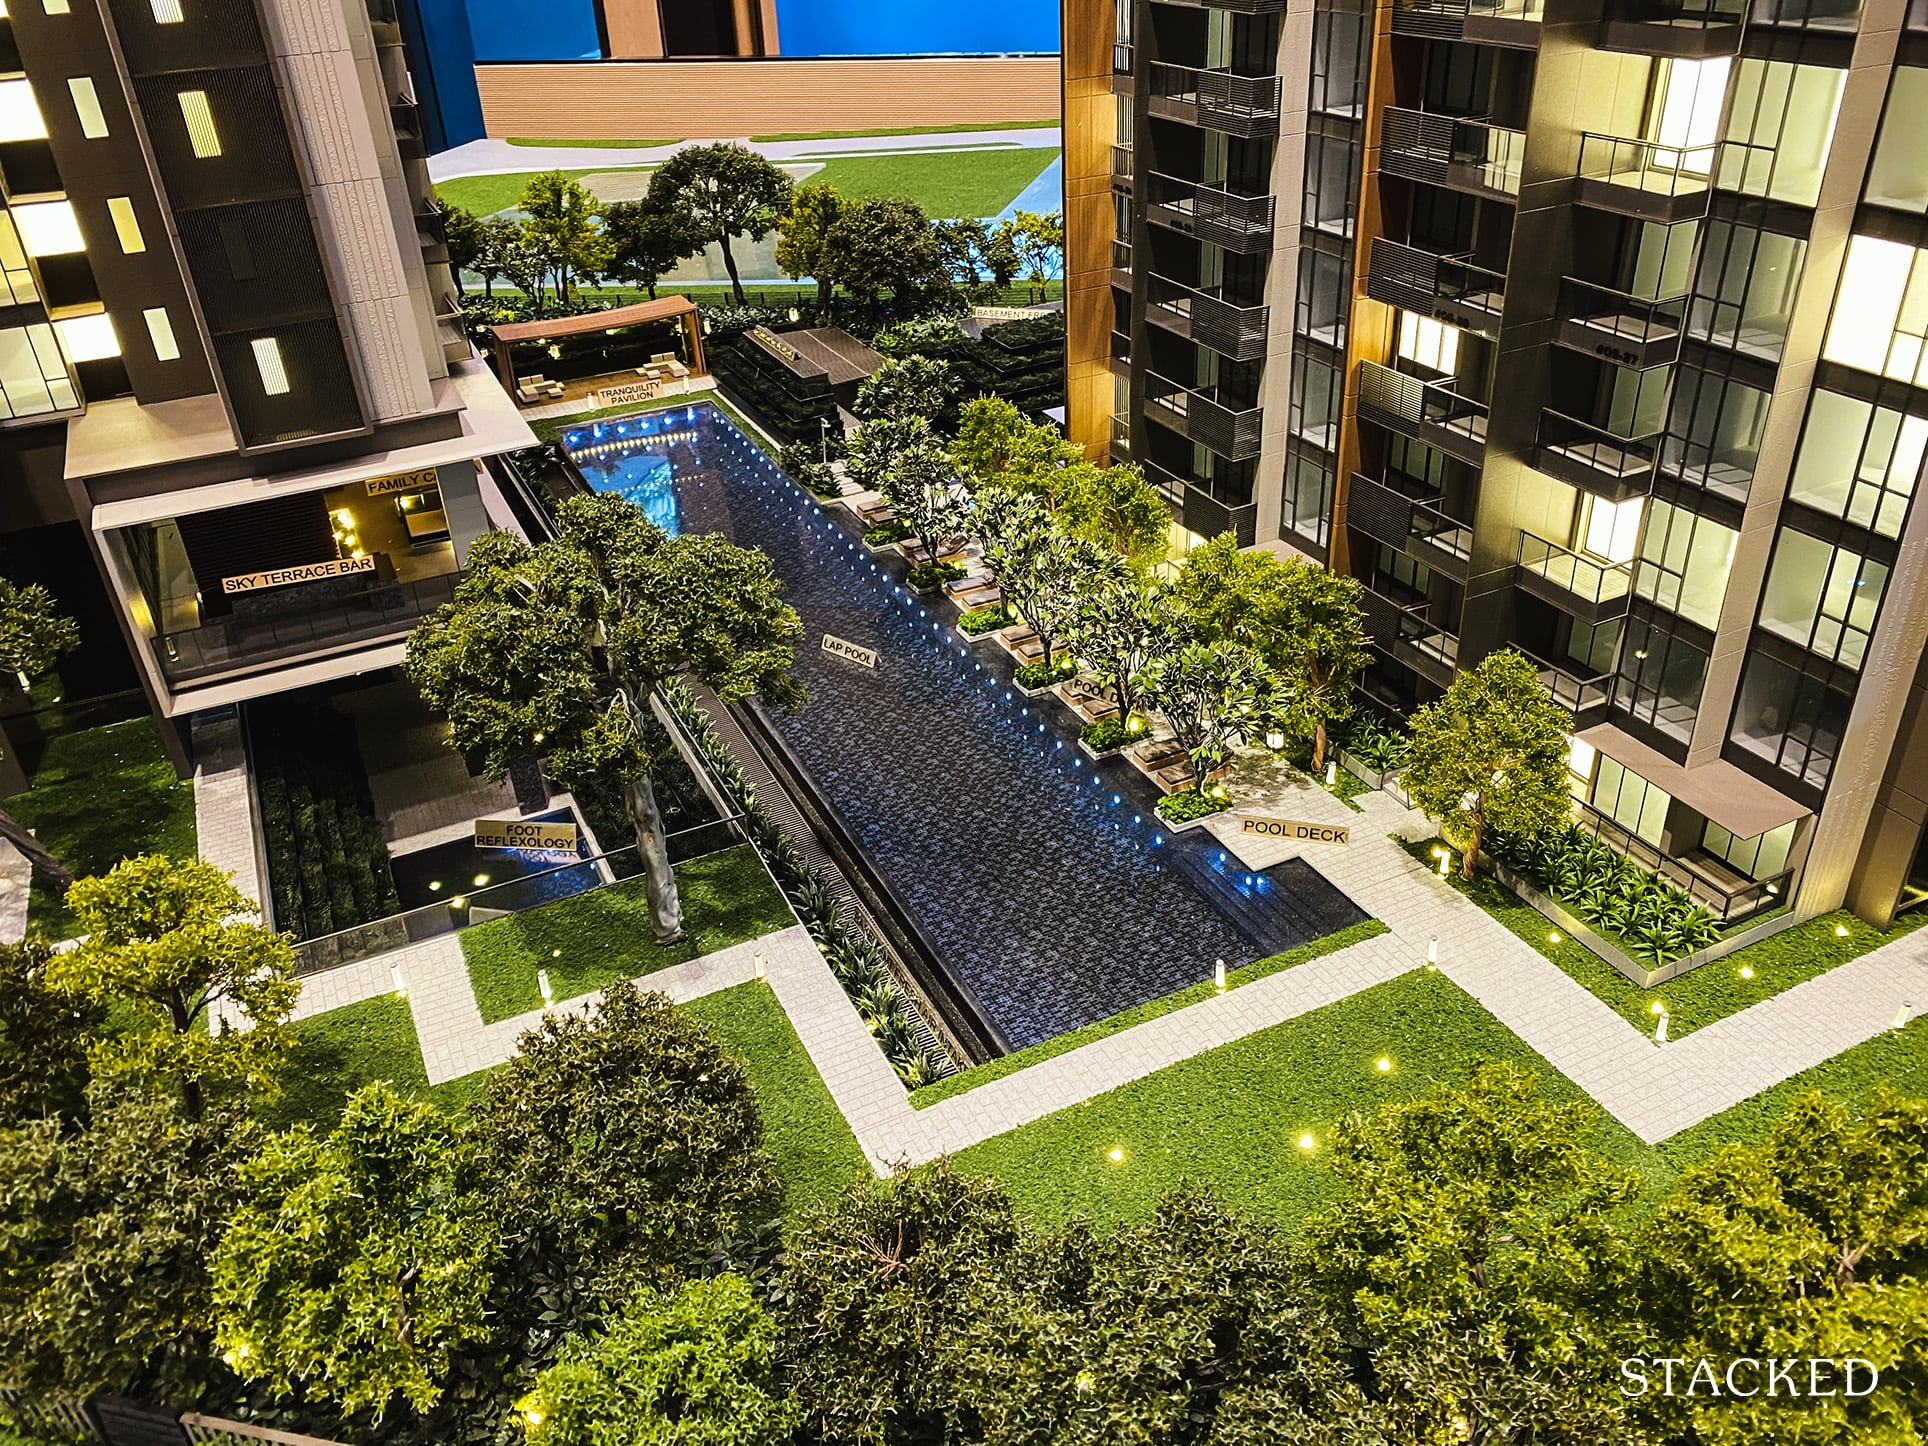 leedon green lap pool